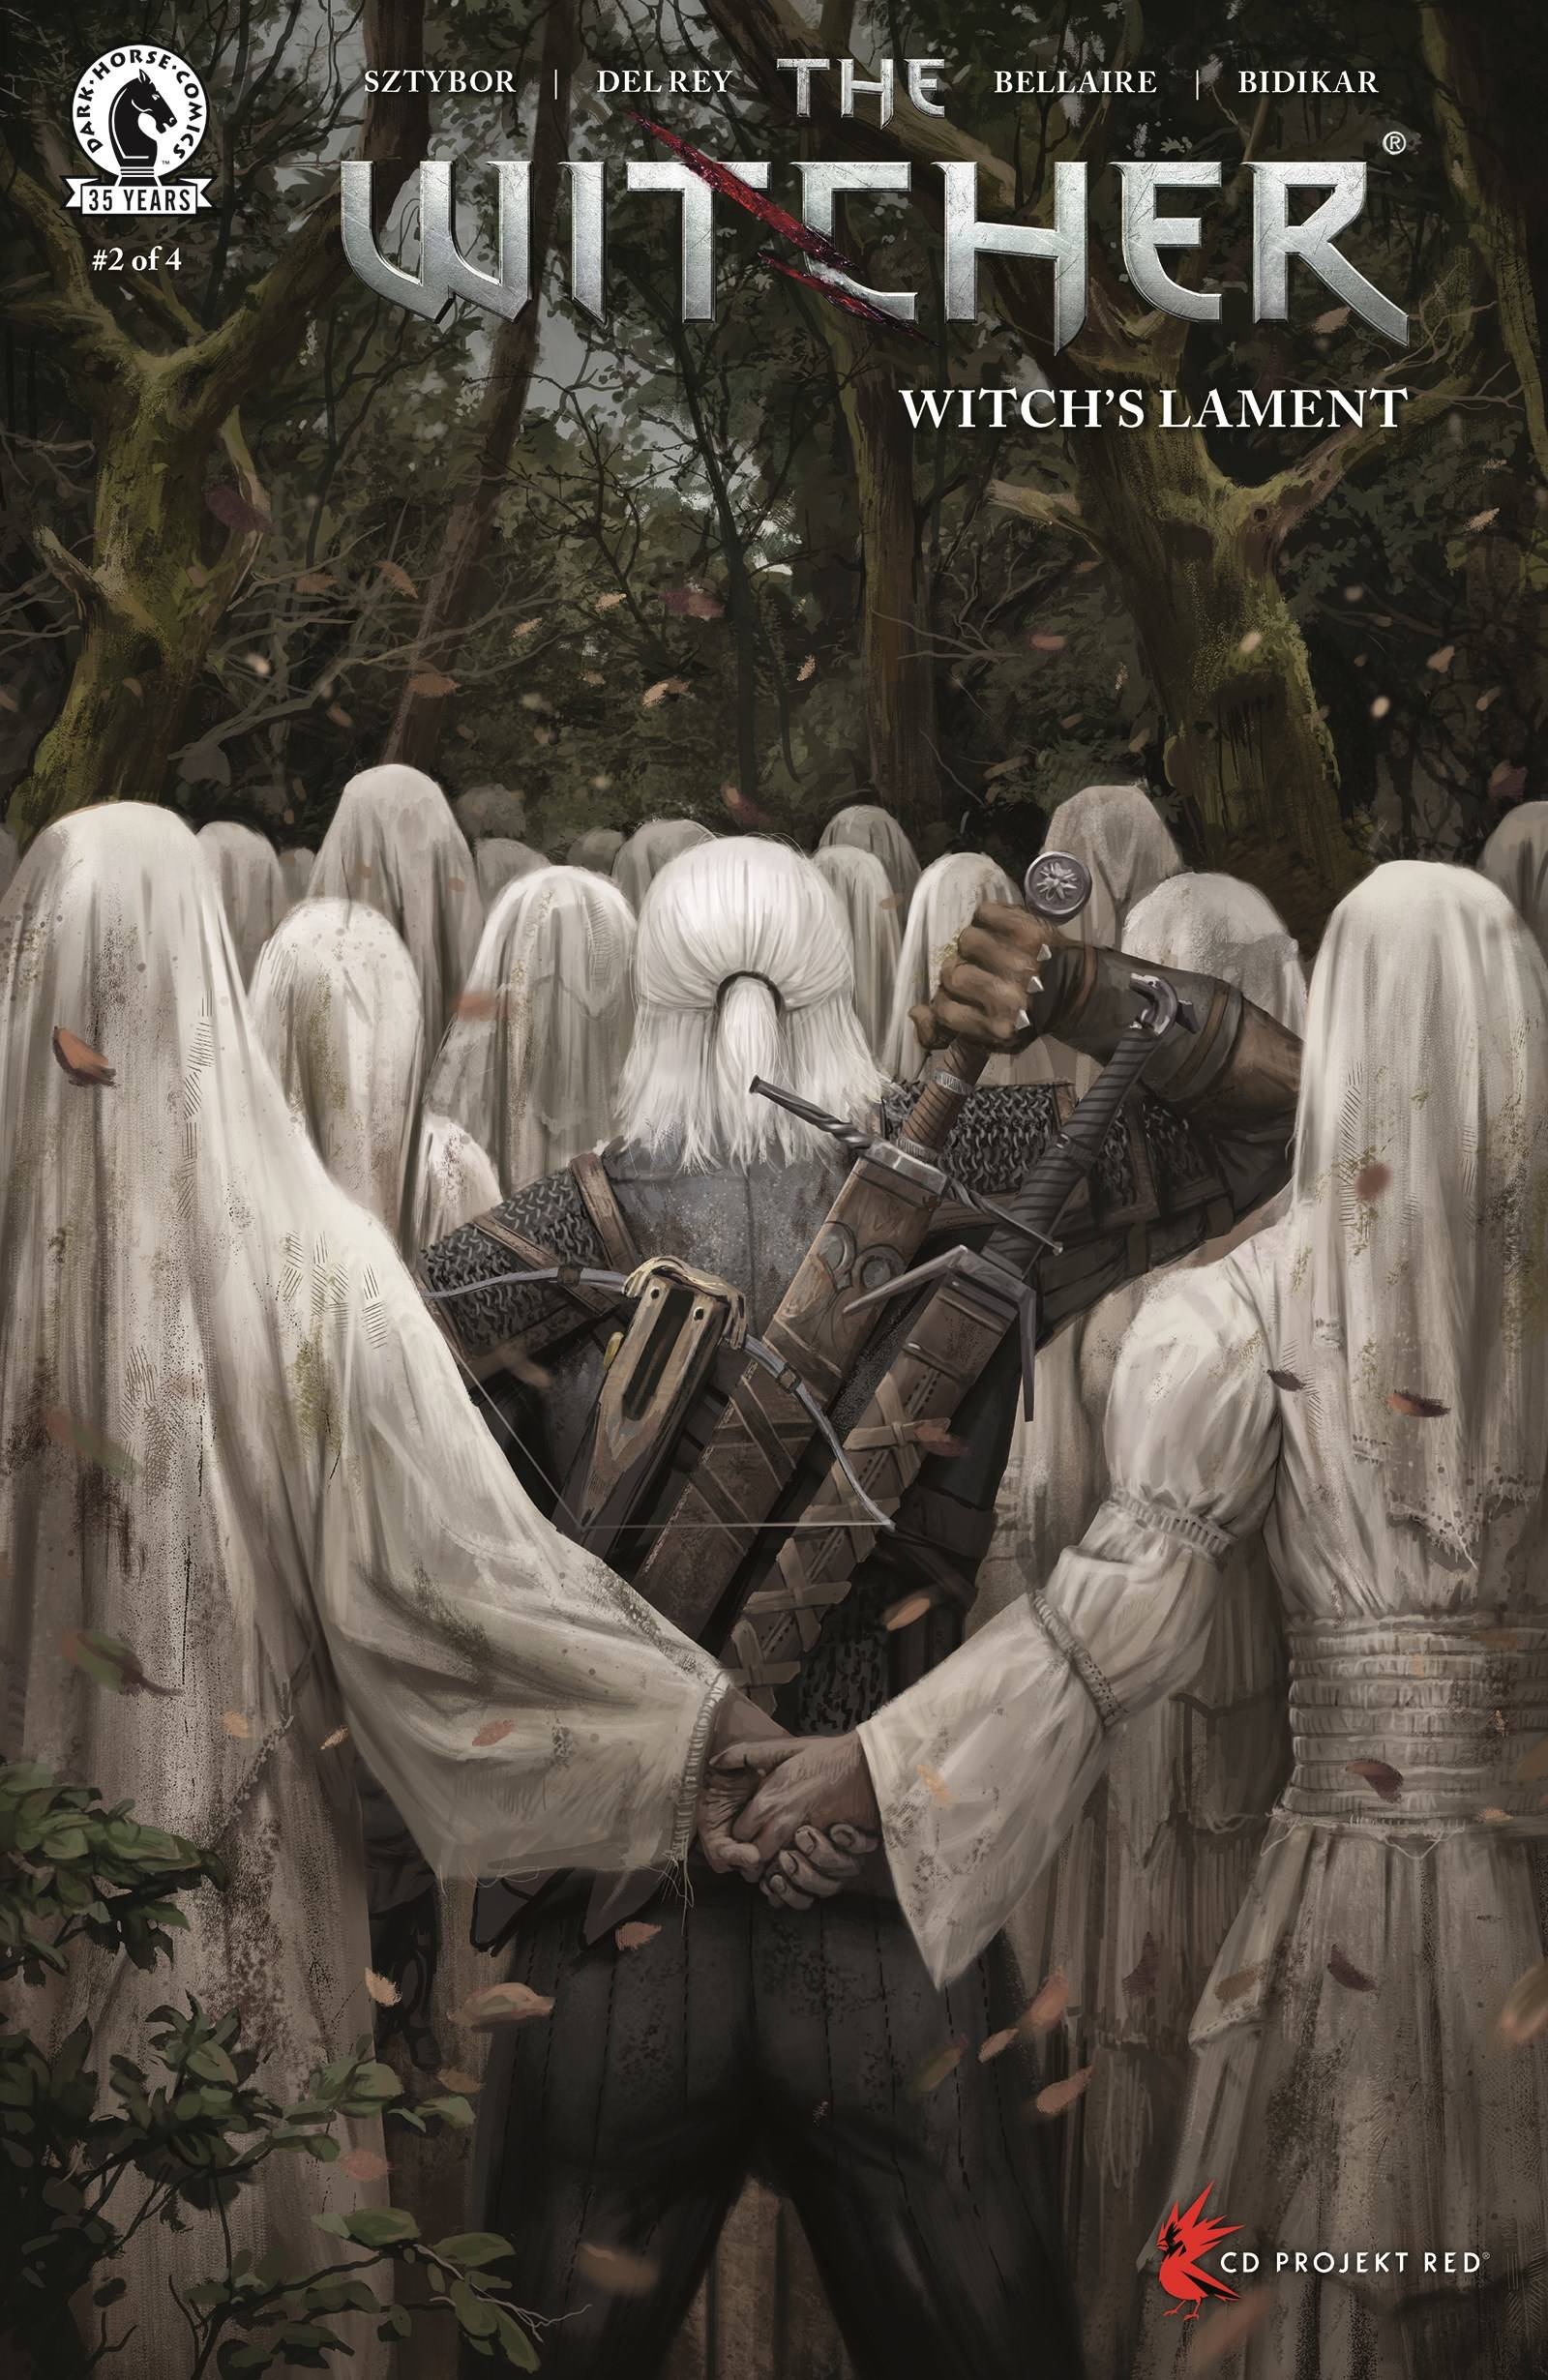 WITCHER WITCHS LAMENT #2 (OF 4) CVR C KOIDL